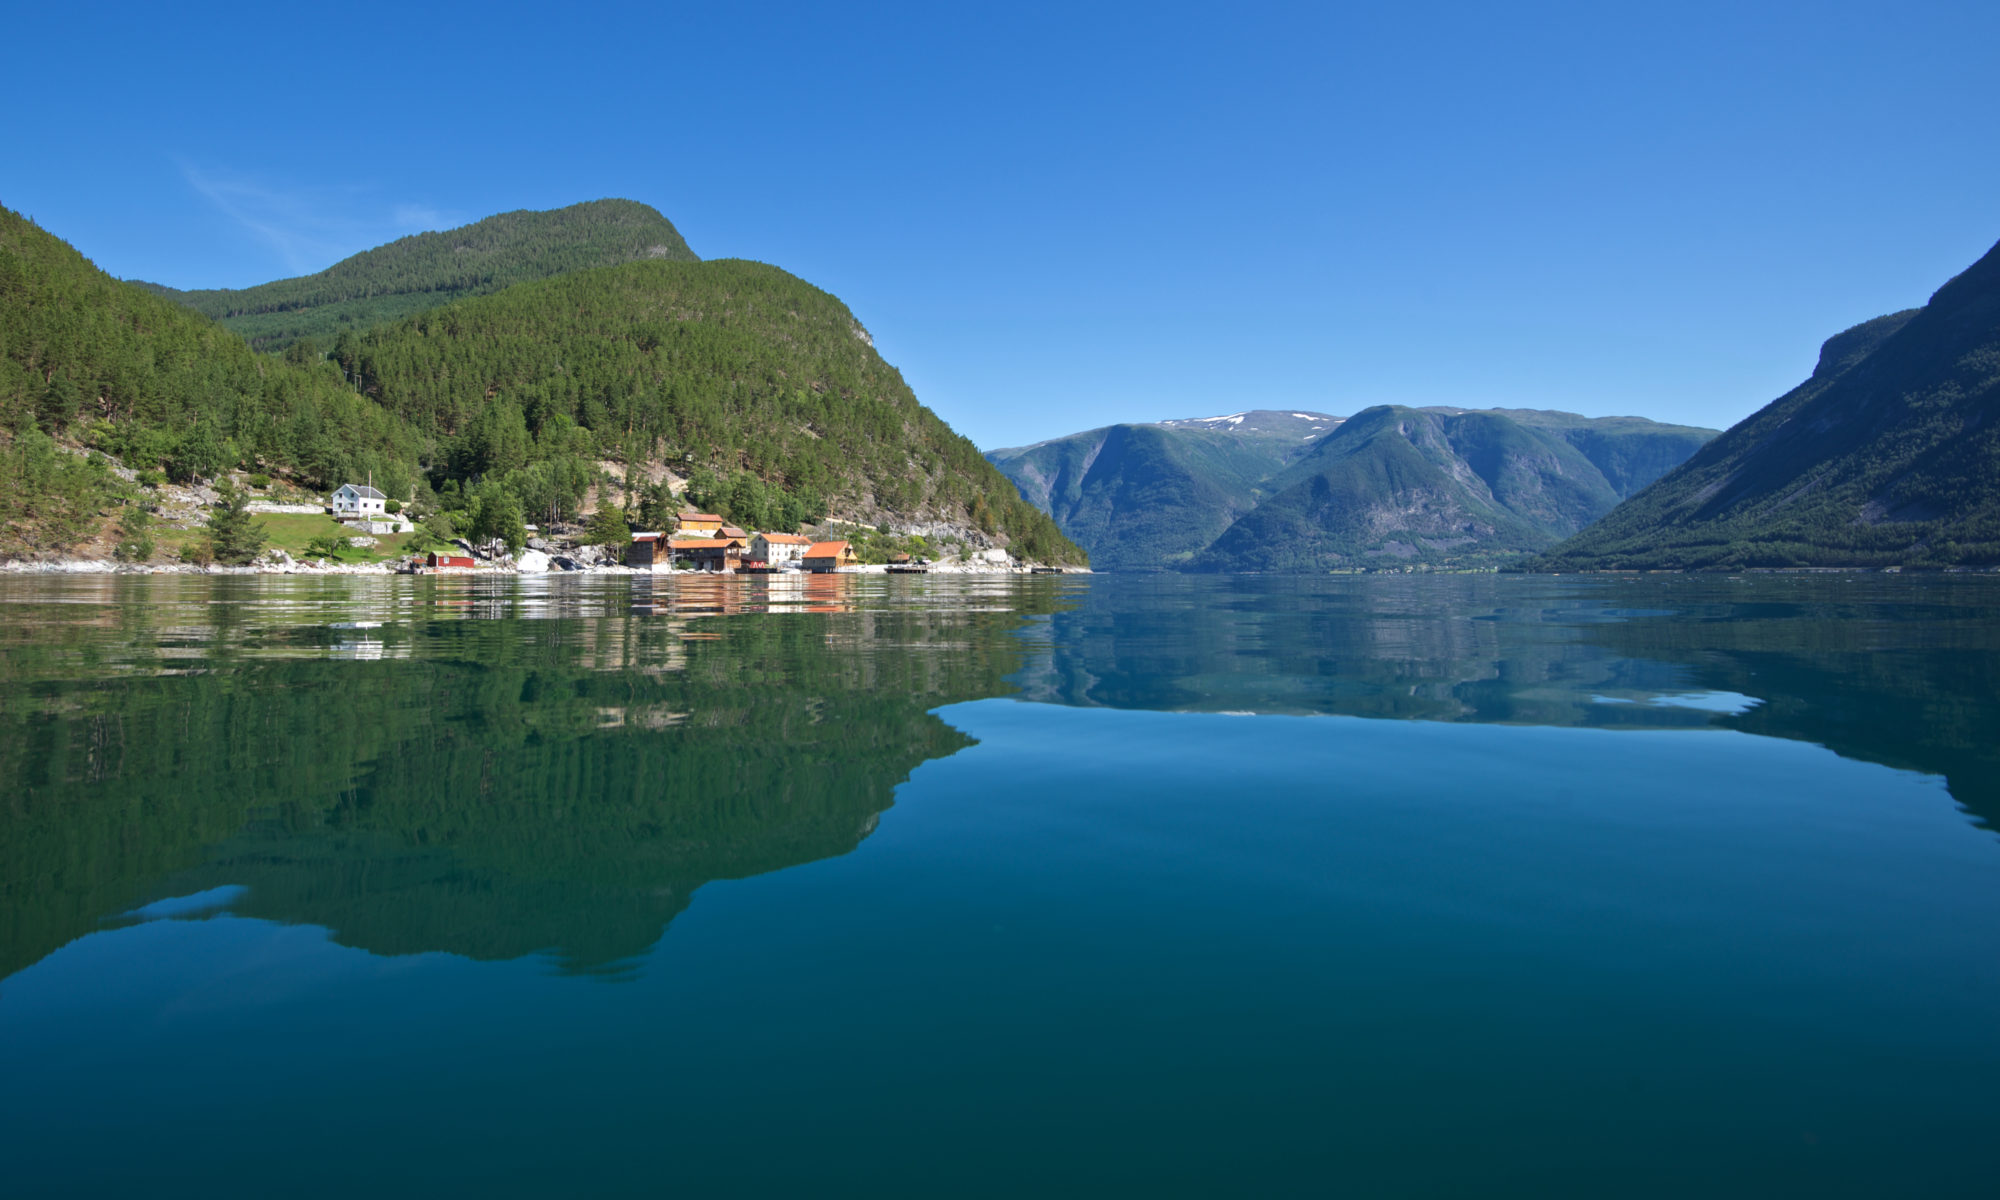 FJORDS NORWAY - Indre Ofredal by the Årdalsfjord, part of the Sognefjord in Norway